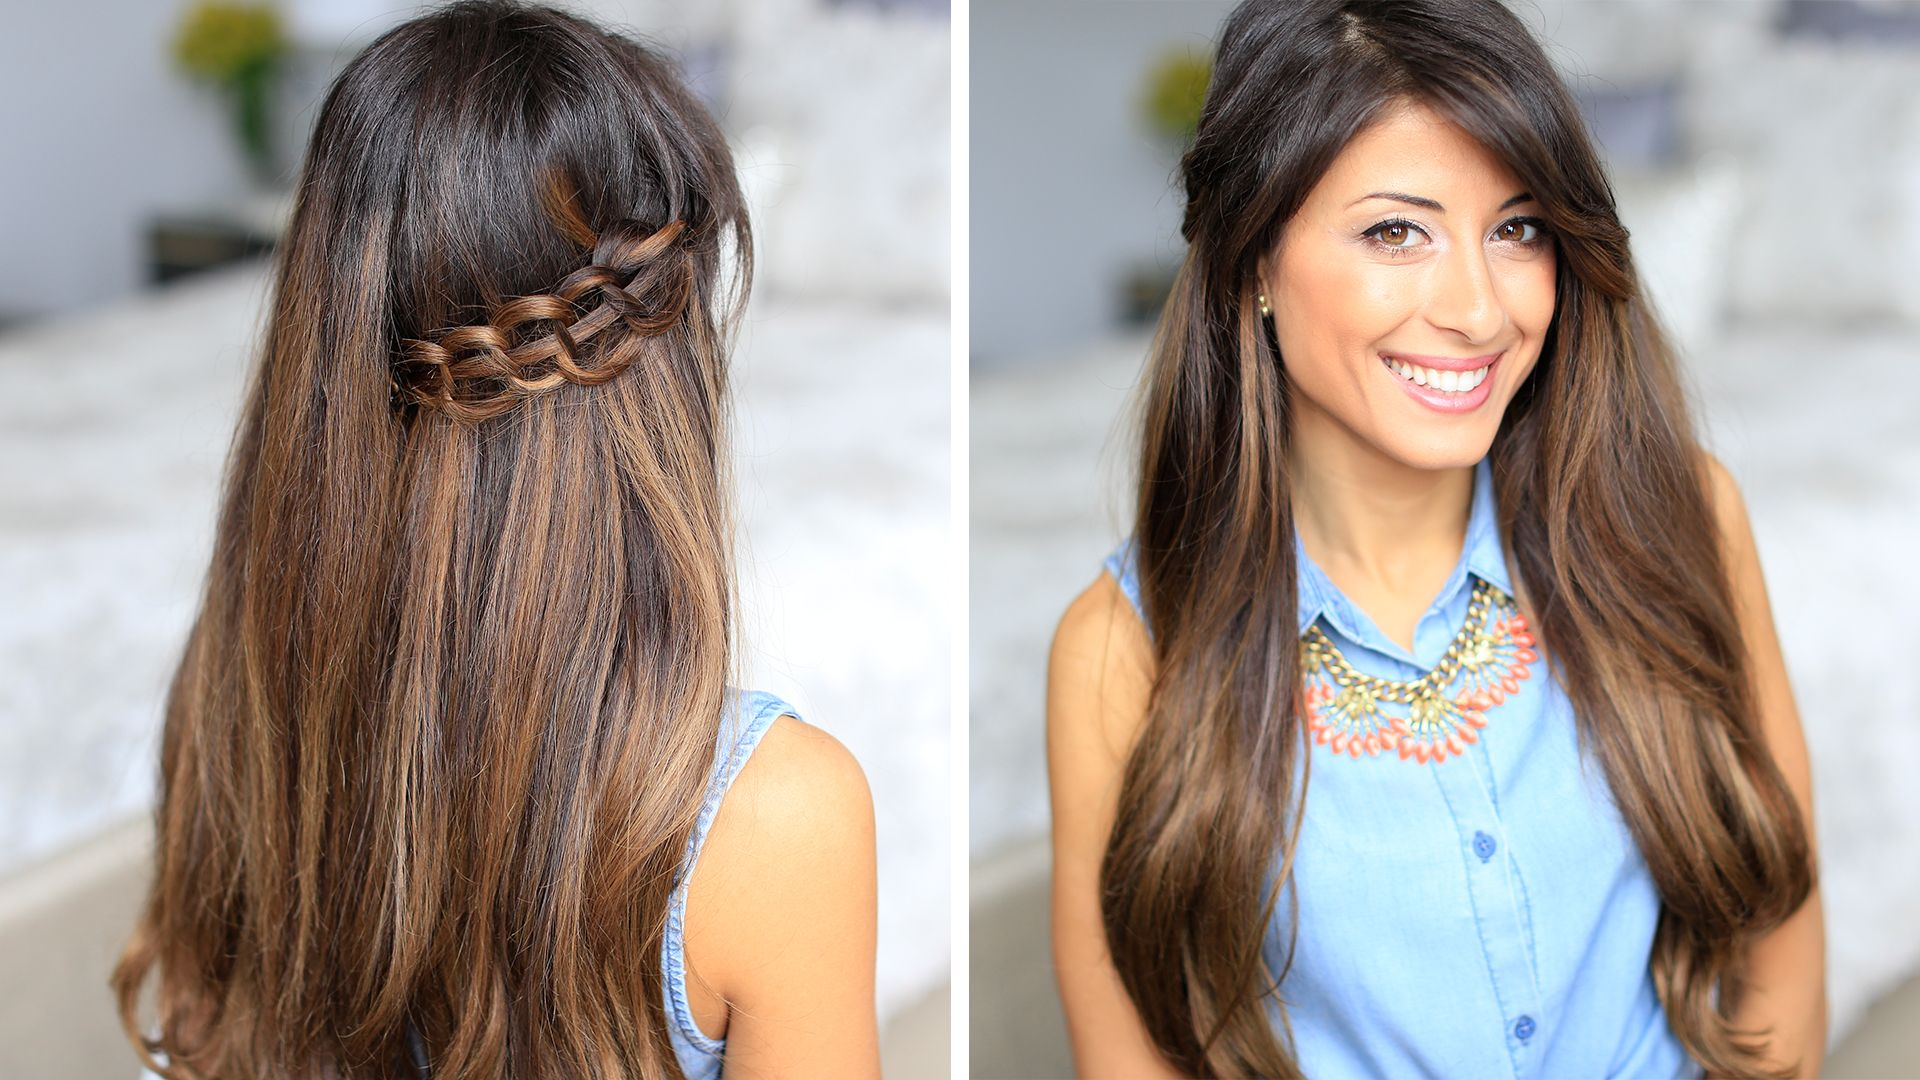 quick and simple stitch braid. click to learn how to create